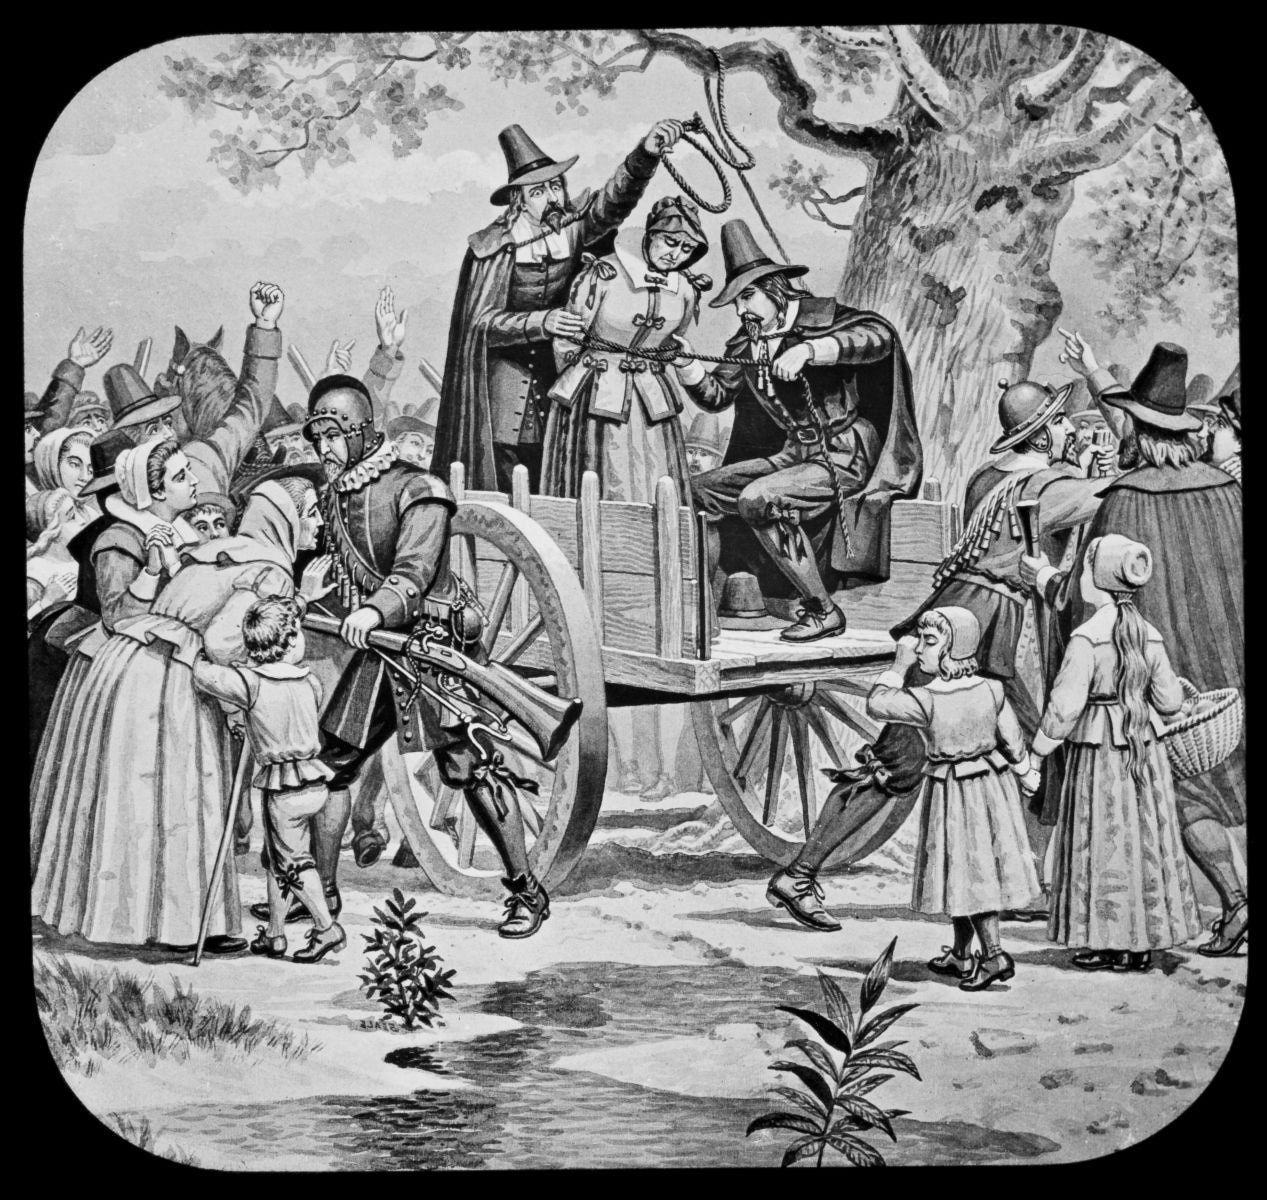 best ideas about m witch trials victims 17 best ideas about m witch trials victims m witch trials witch trials and m witch trails